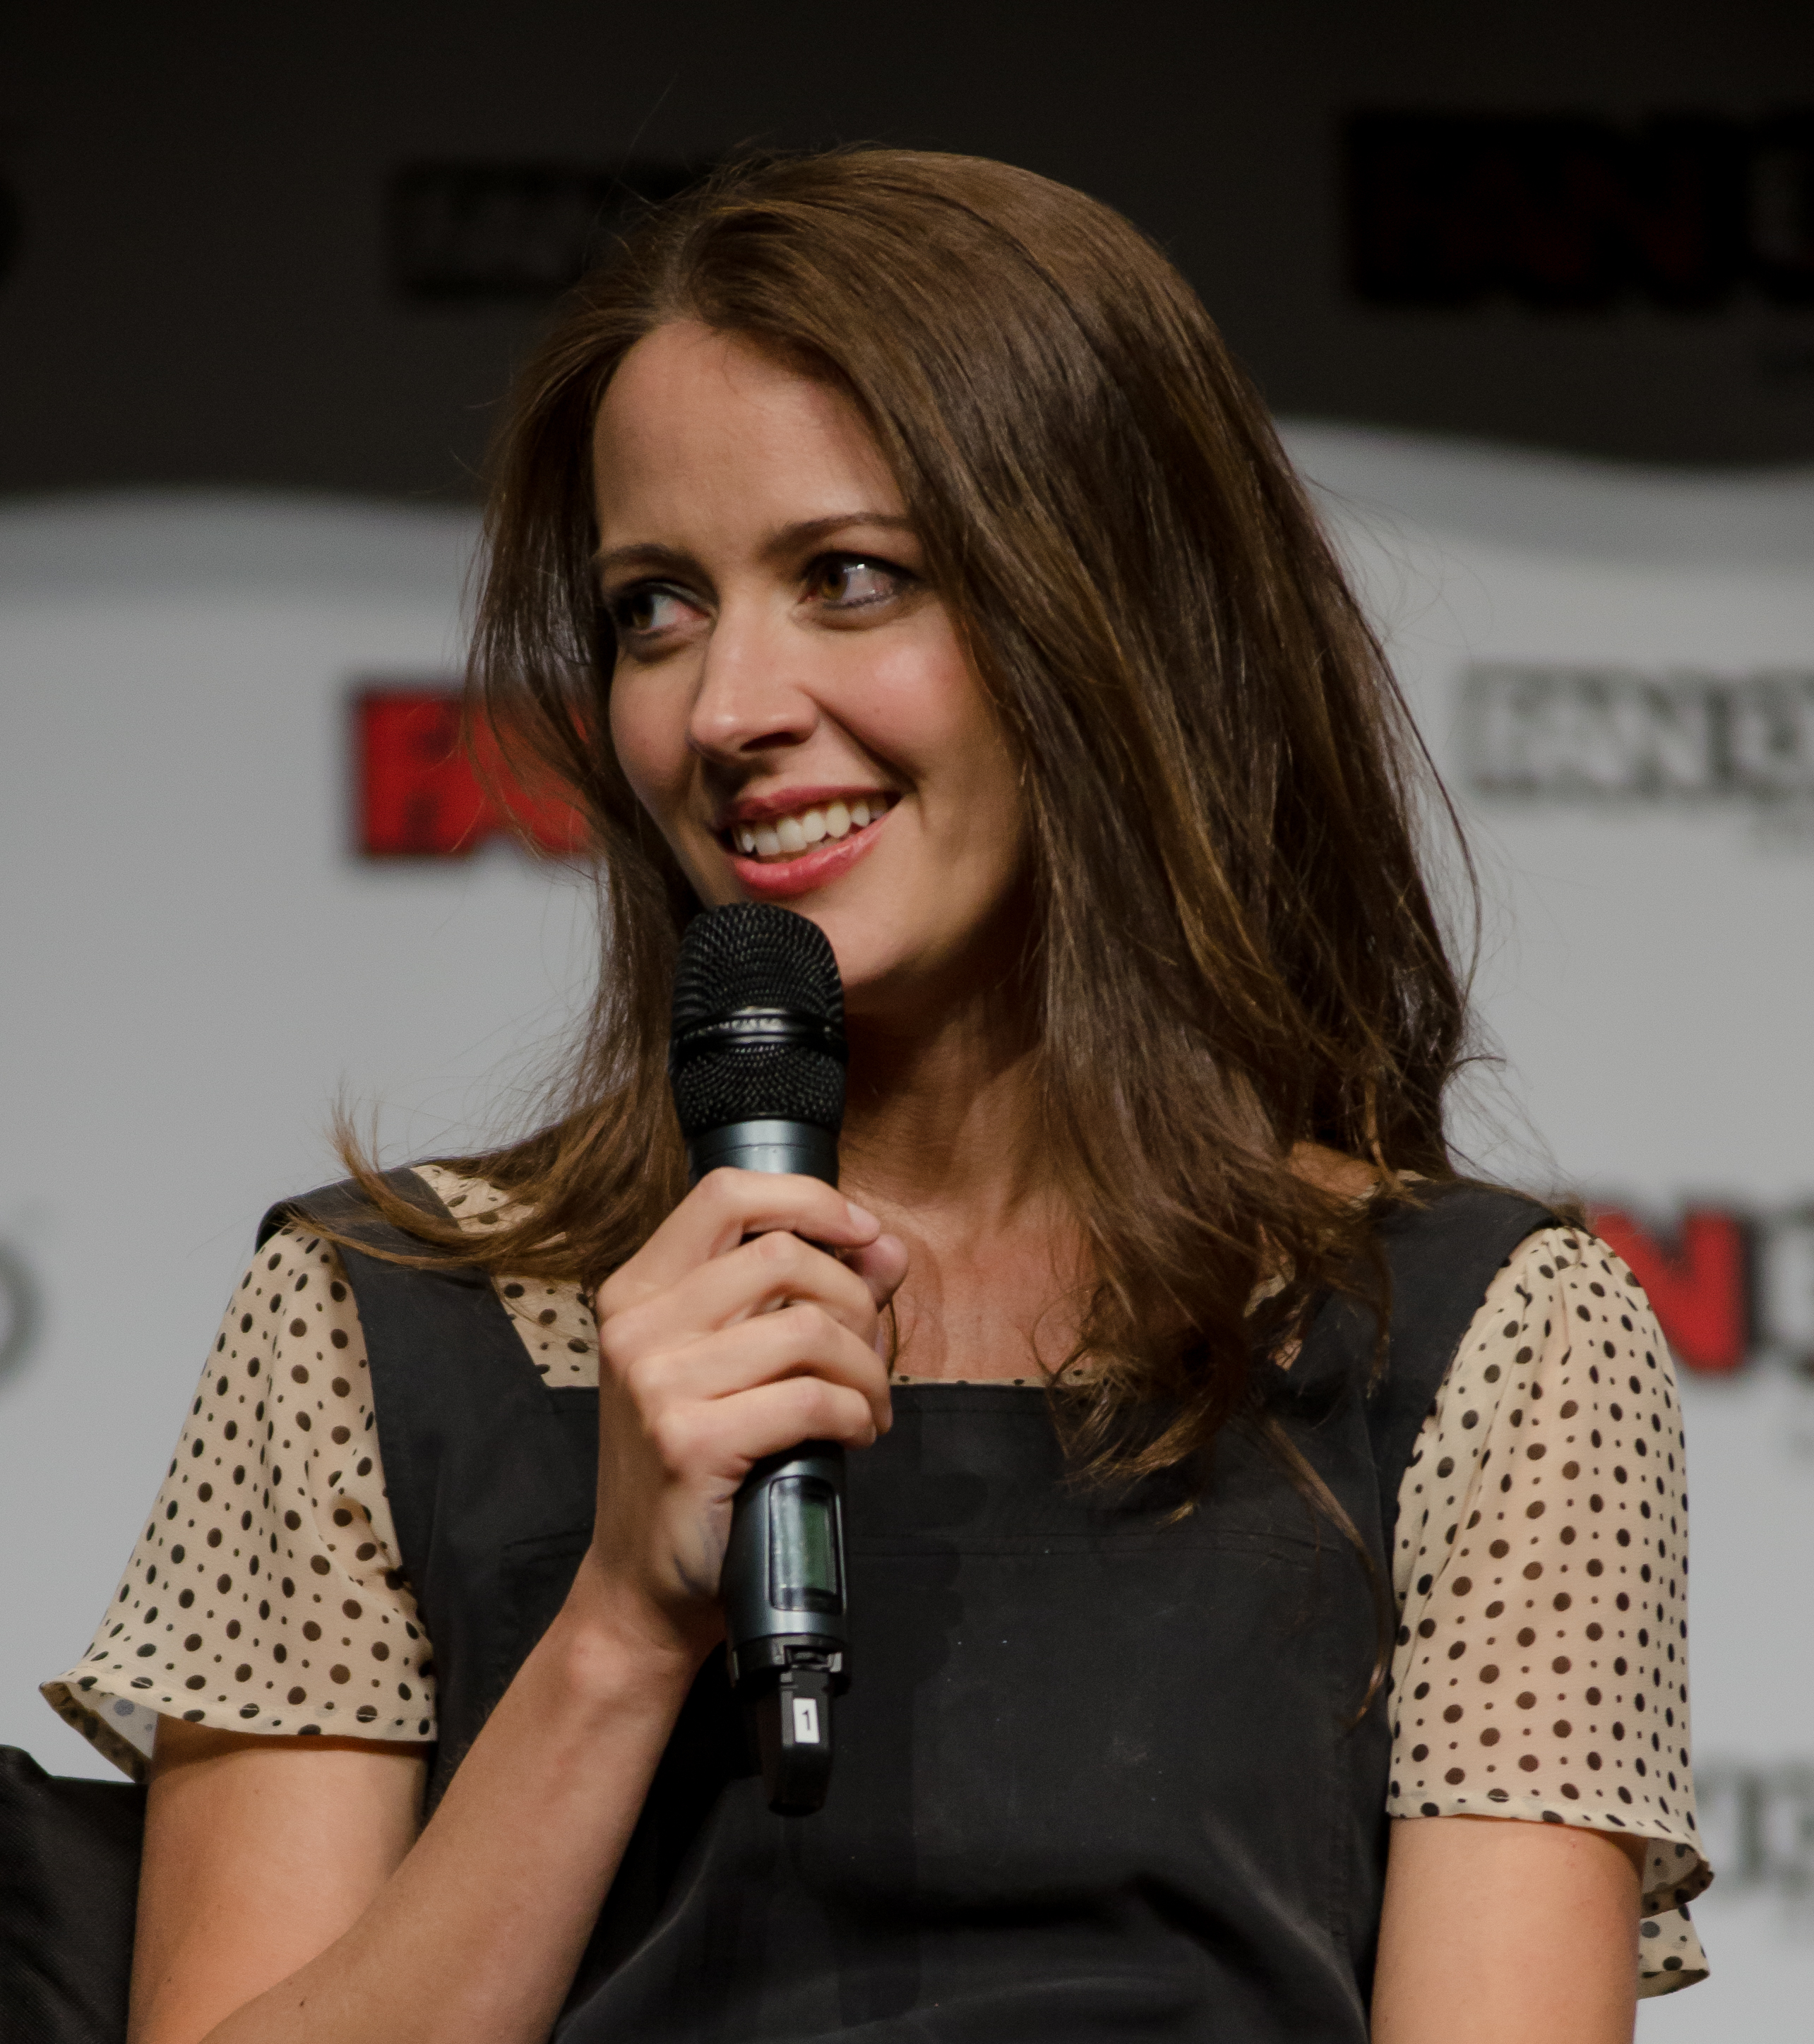 The 41-year old daughter of father (?) and mother(?) Amy Acker in 2018 photo. Amy Acker earned a  million dollar salary - leaving the net worth at 0.5 million in 2018